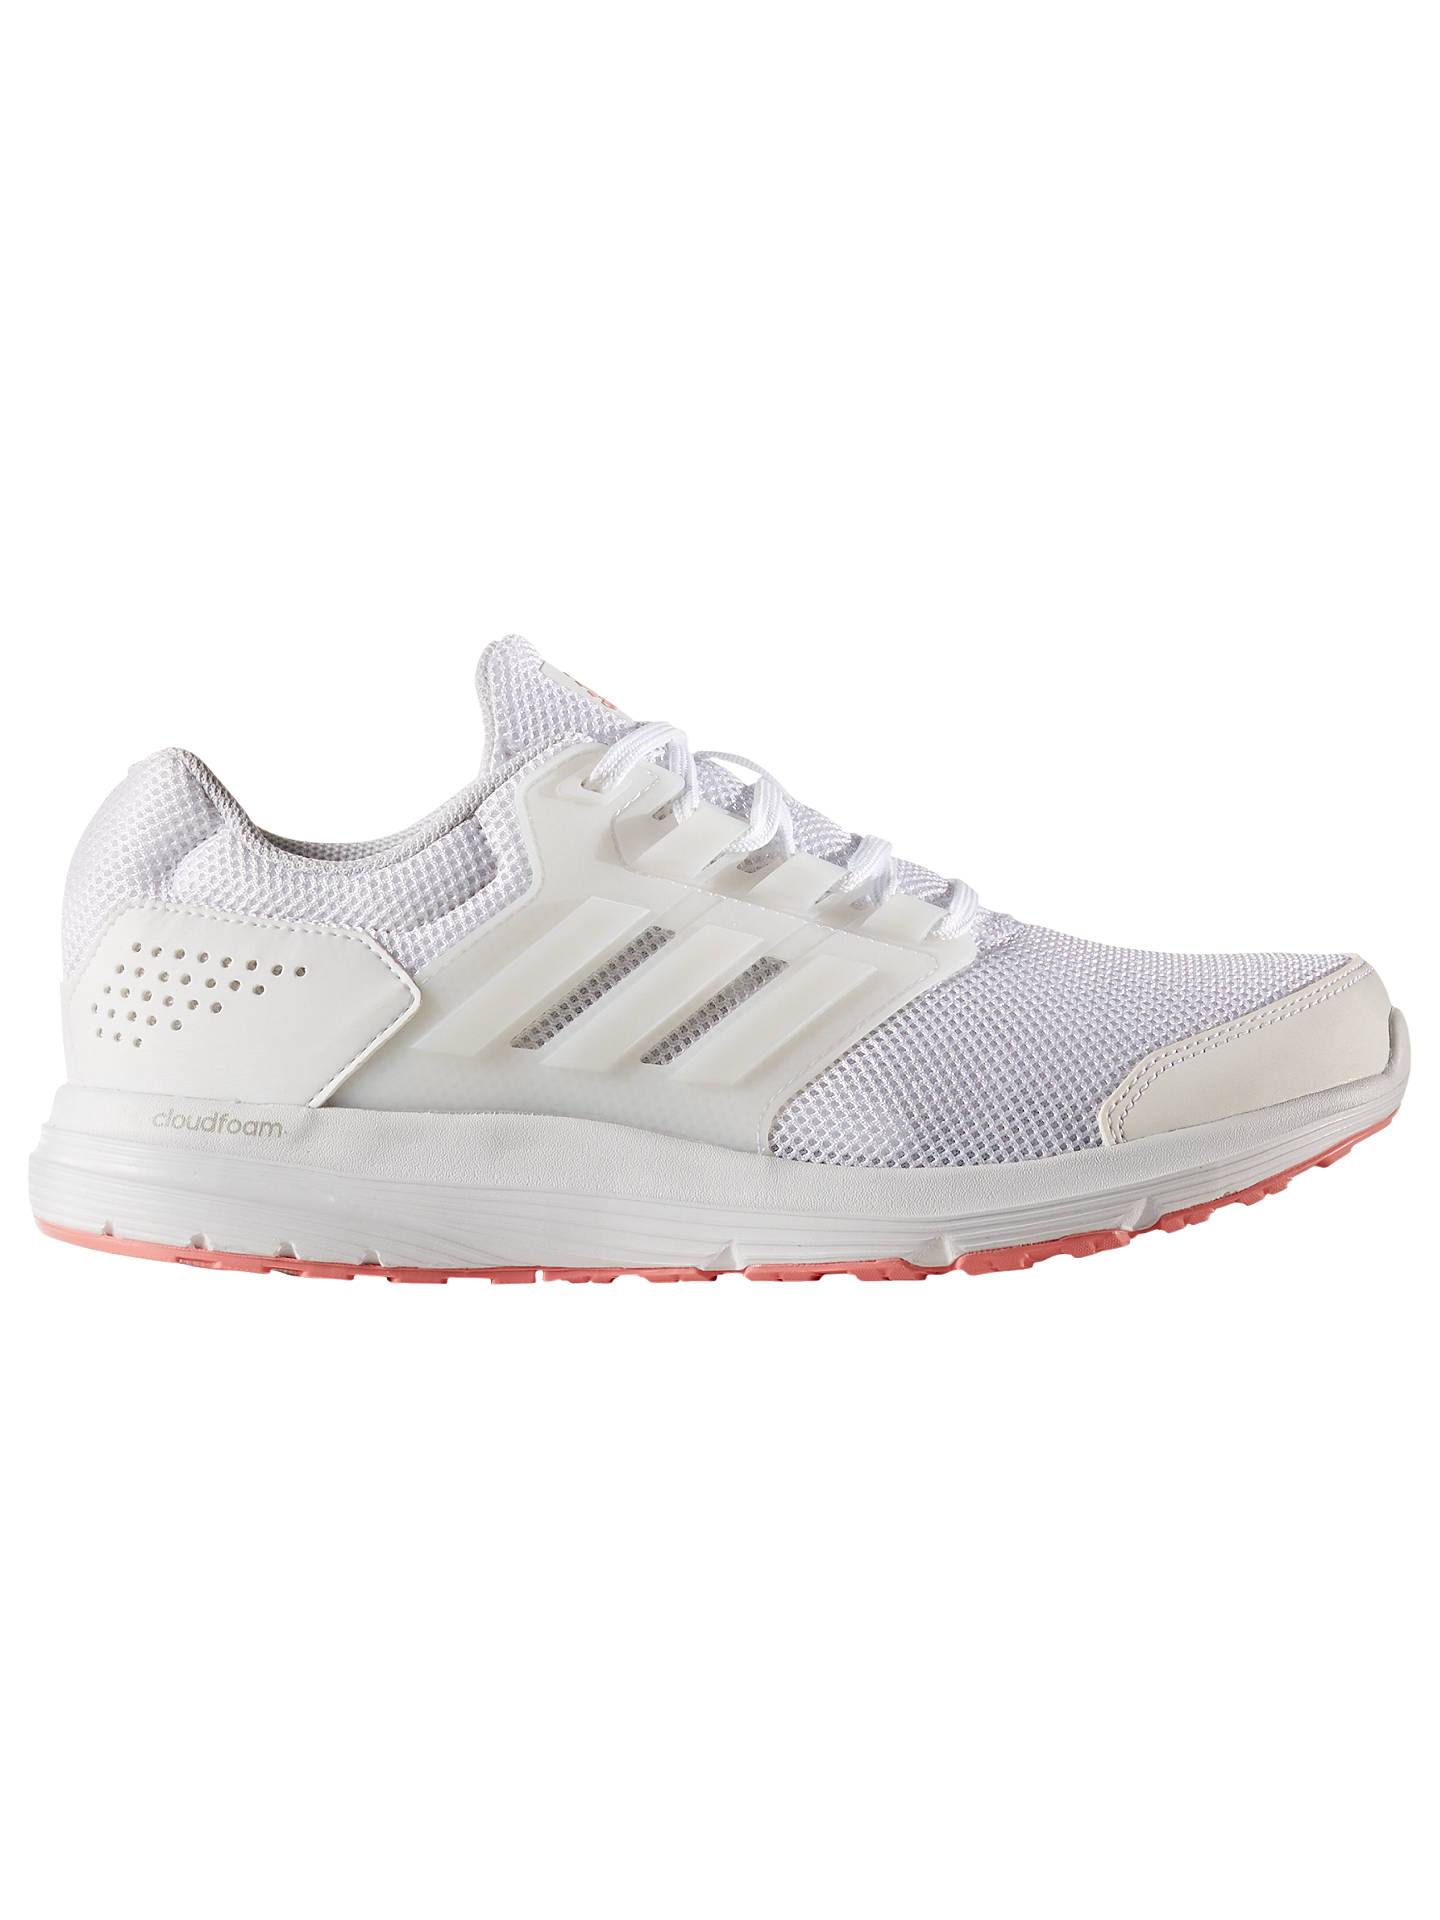 promo code c62af 32109 Buyadidas Galaxy 4 Womens Running Shoes, WhiteRose, 4 Online at johnlewis.